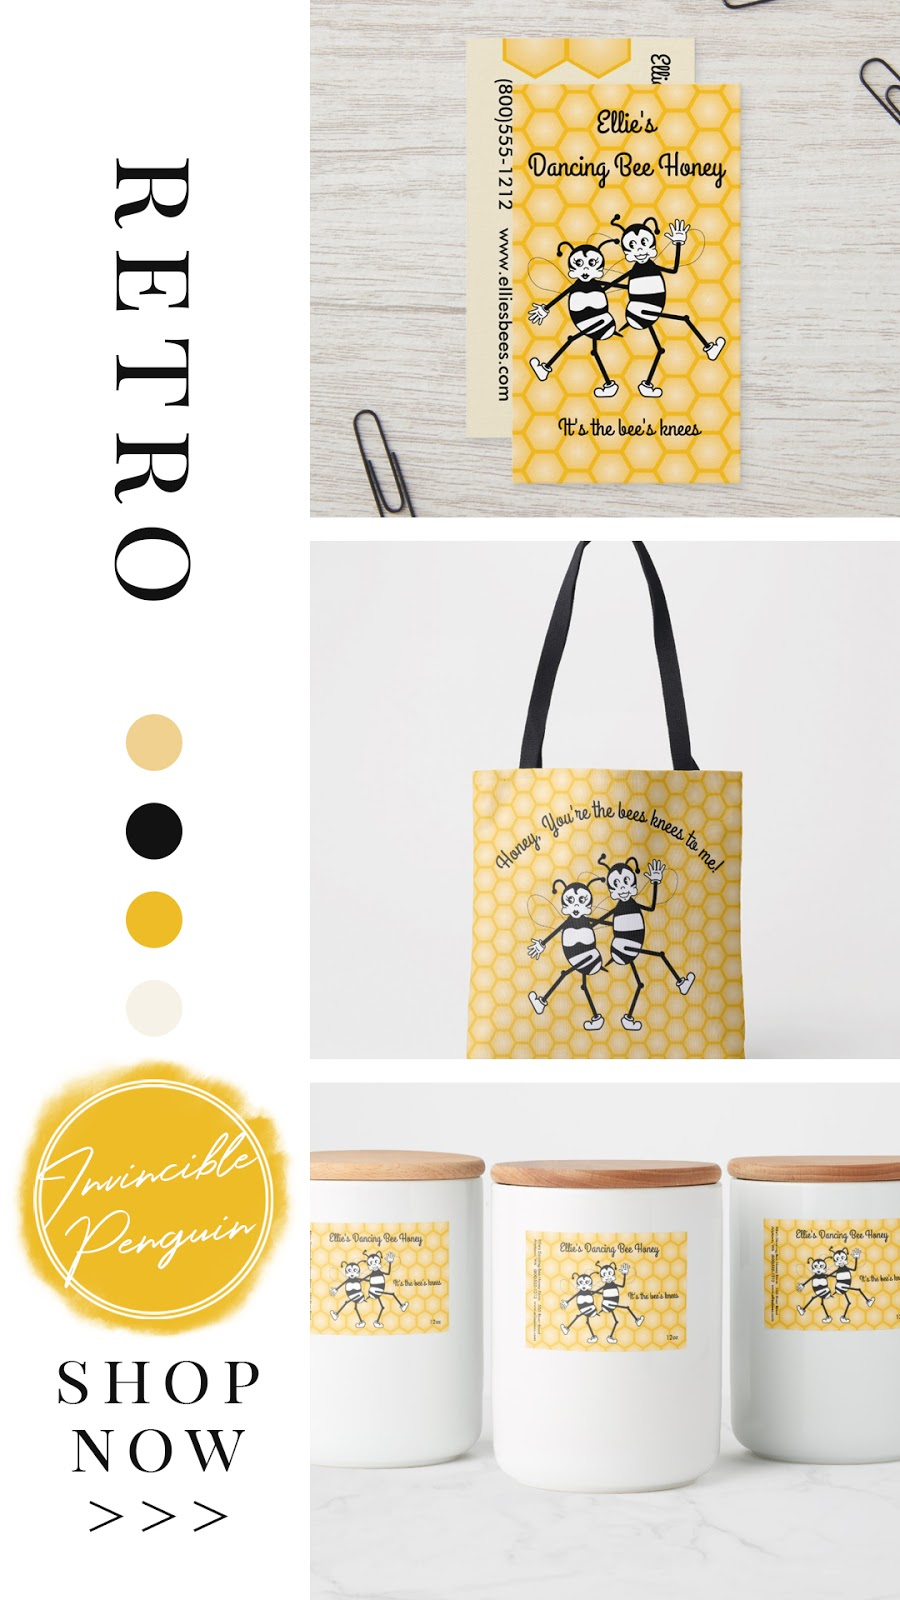 Retro dancing black and white bees and yellow honeycomb patterned background. On honey jar labels, tote bags, business cards, personalized gifts. It's the bees knees! In black amber and yellow color palette.